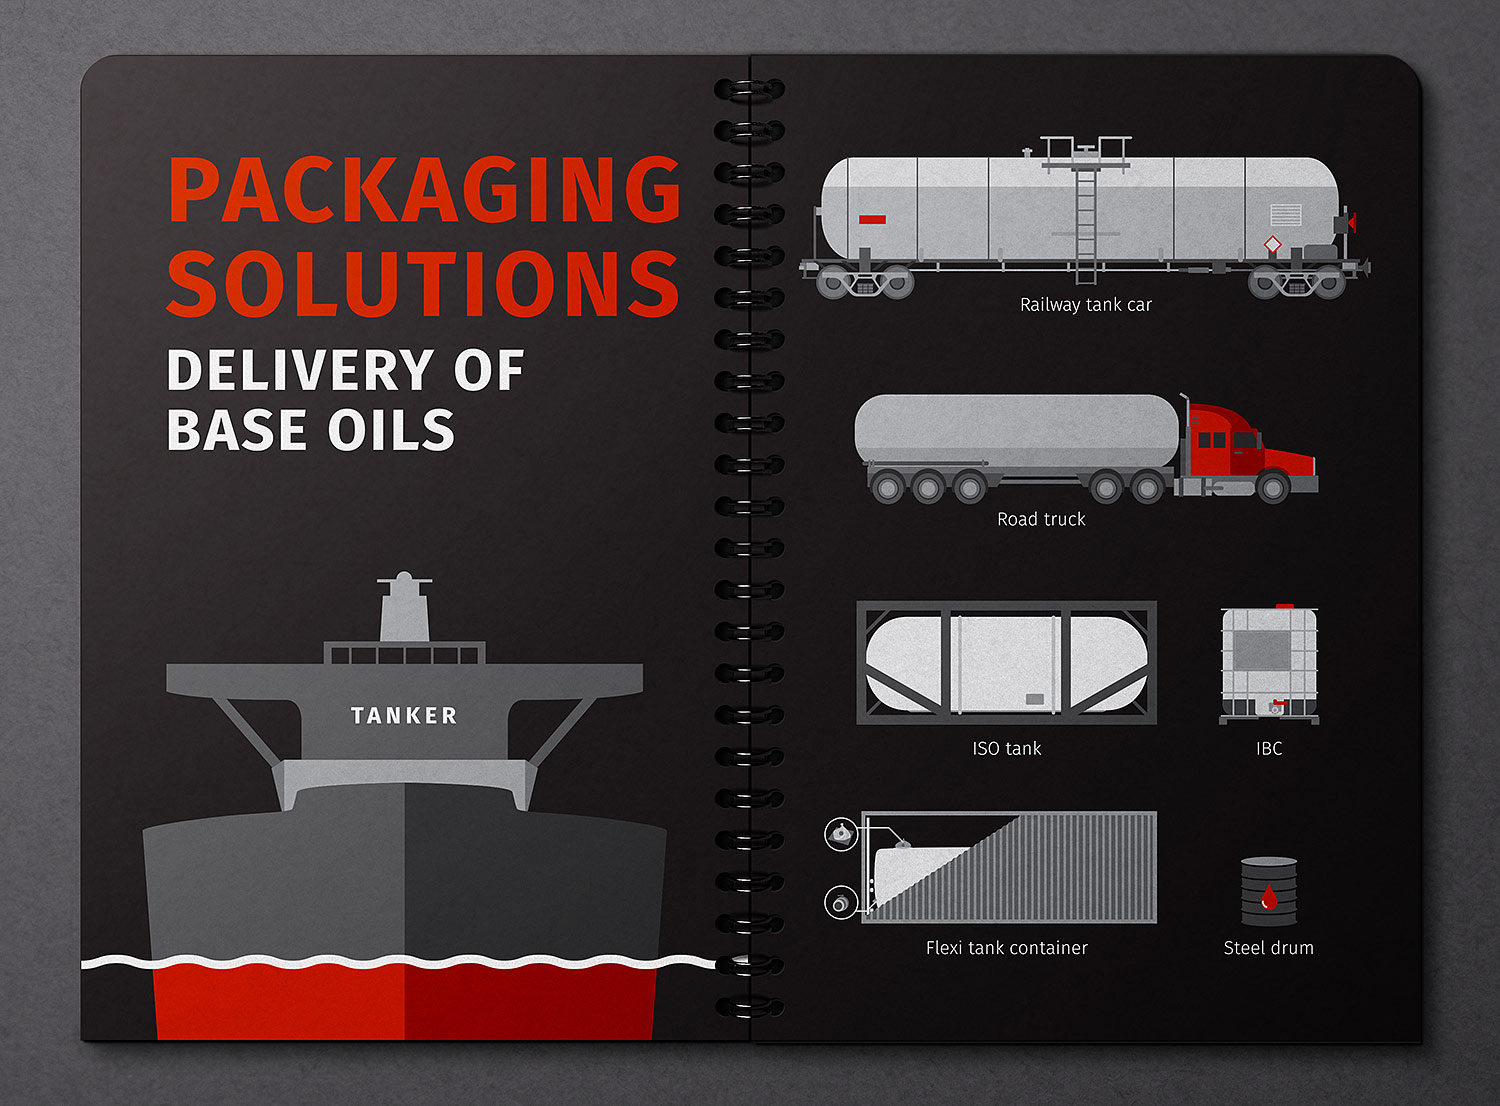 Sea tanker, railway tank car, and containers for oil products. Illustrations in the Himbalt presentation.